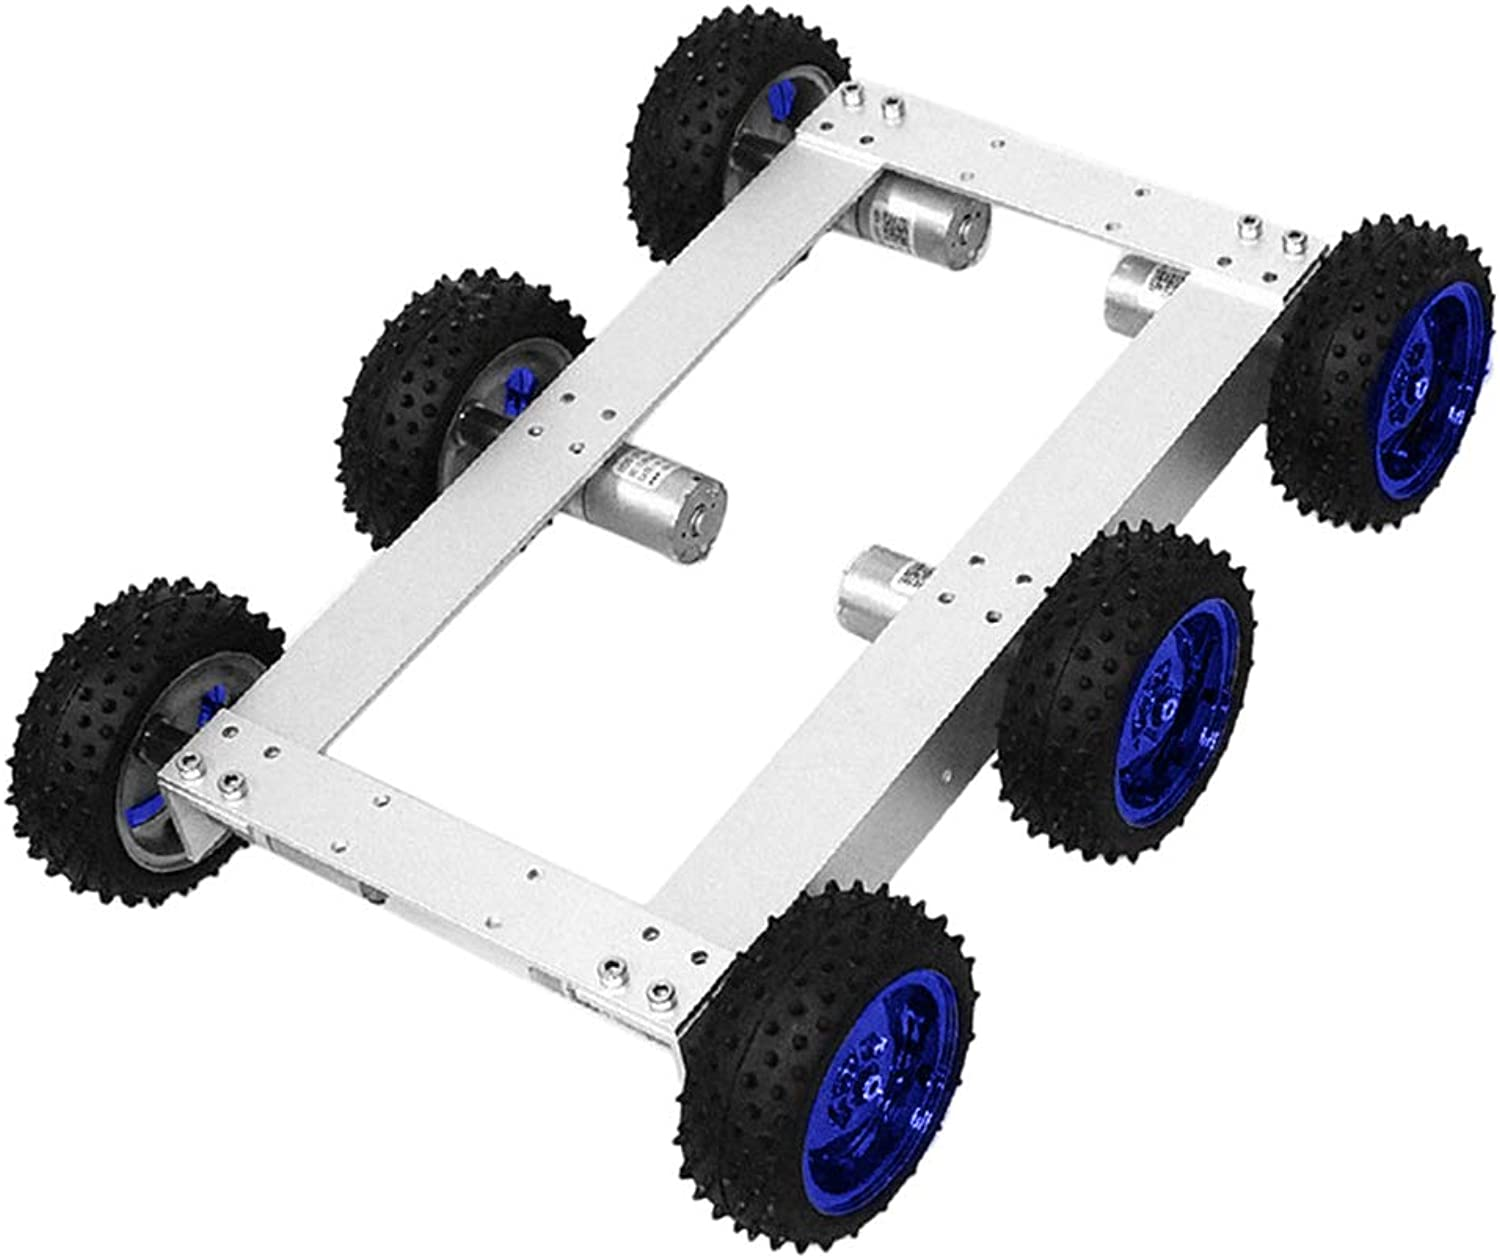 F Fityle Smart Car Platform 6WD Tracked Robot Metal Aluminium Alloy Tank Chassis with Powerful DC 12V Motor for Arduino DIY